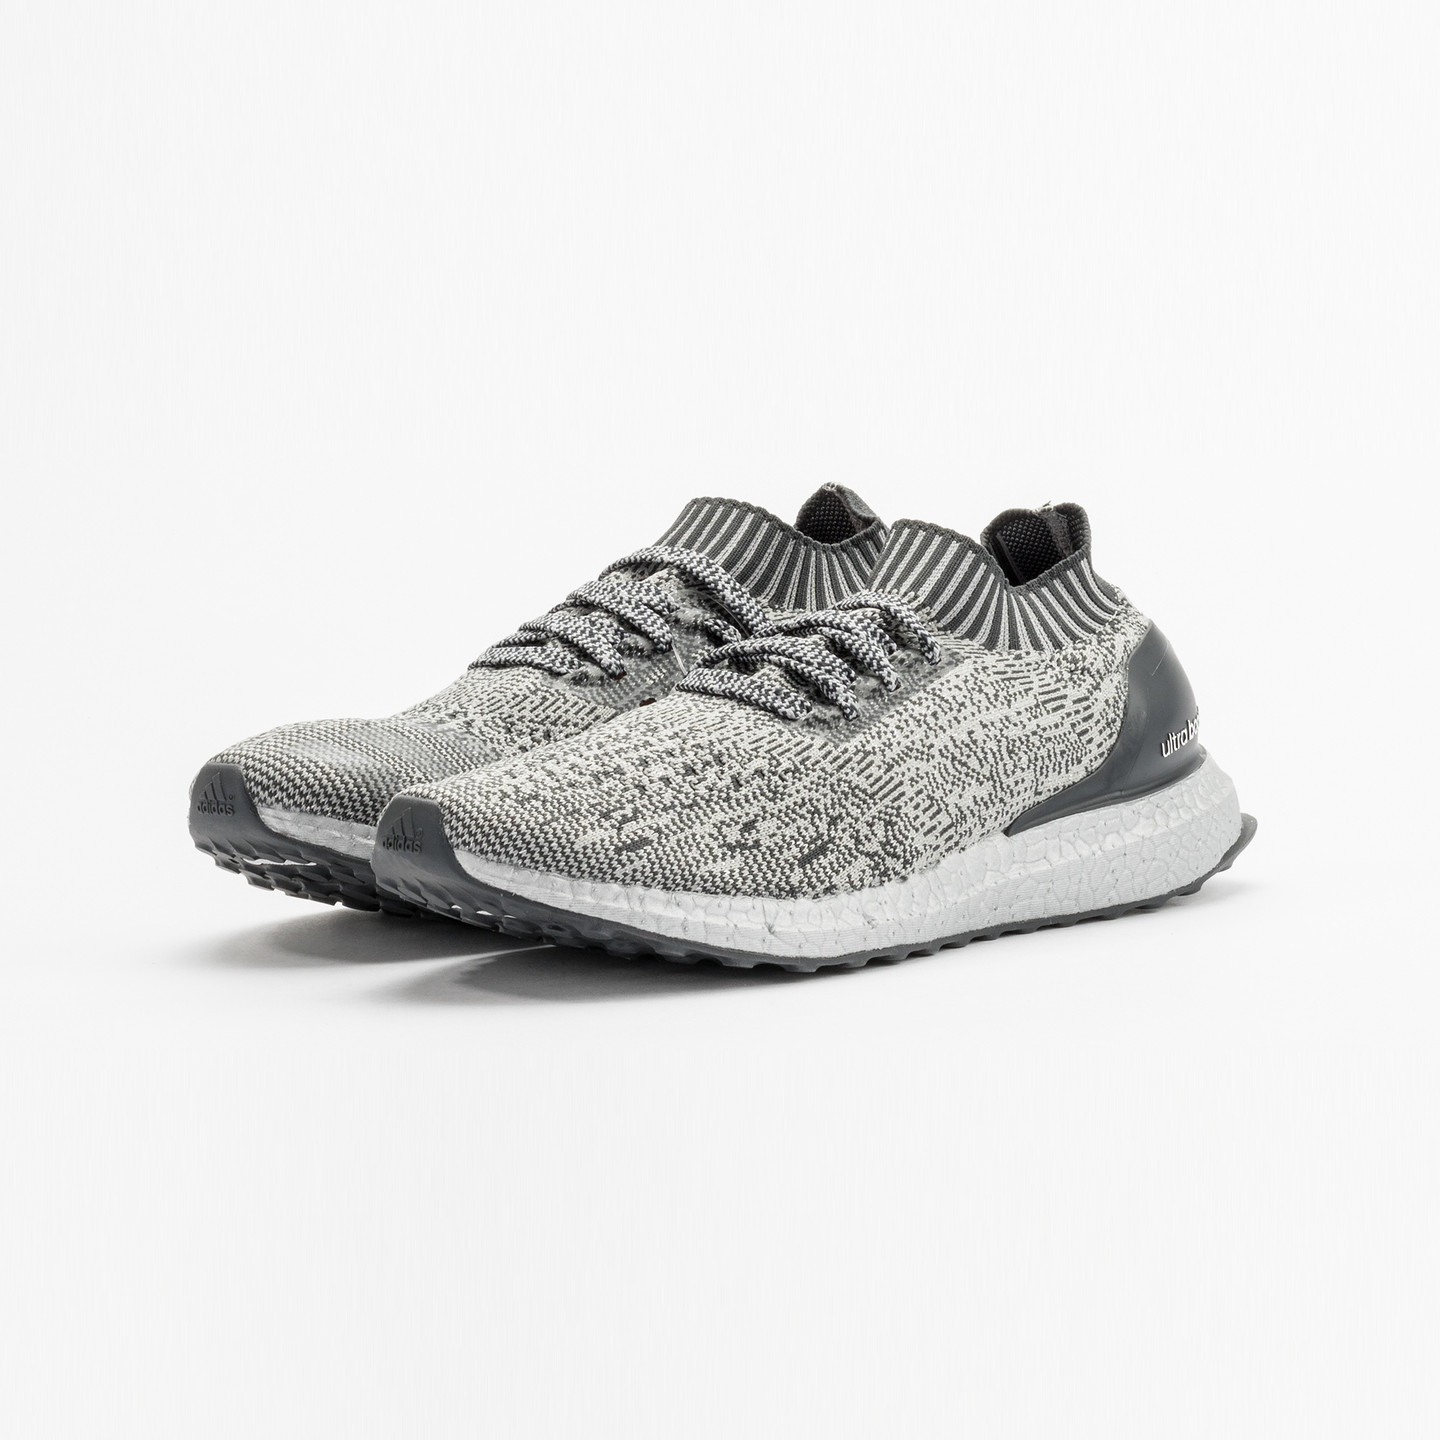 Adidas Ultra Boost Uncaged 'Super Bowl' Silver Grey BA7997-43.33